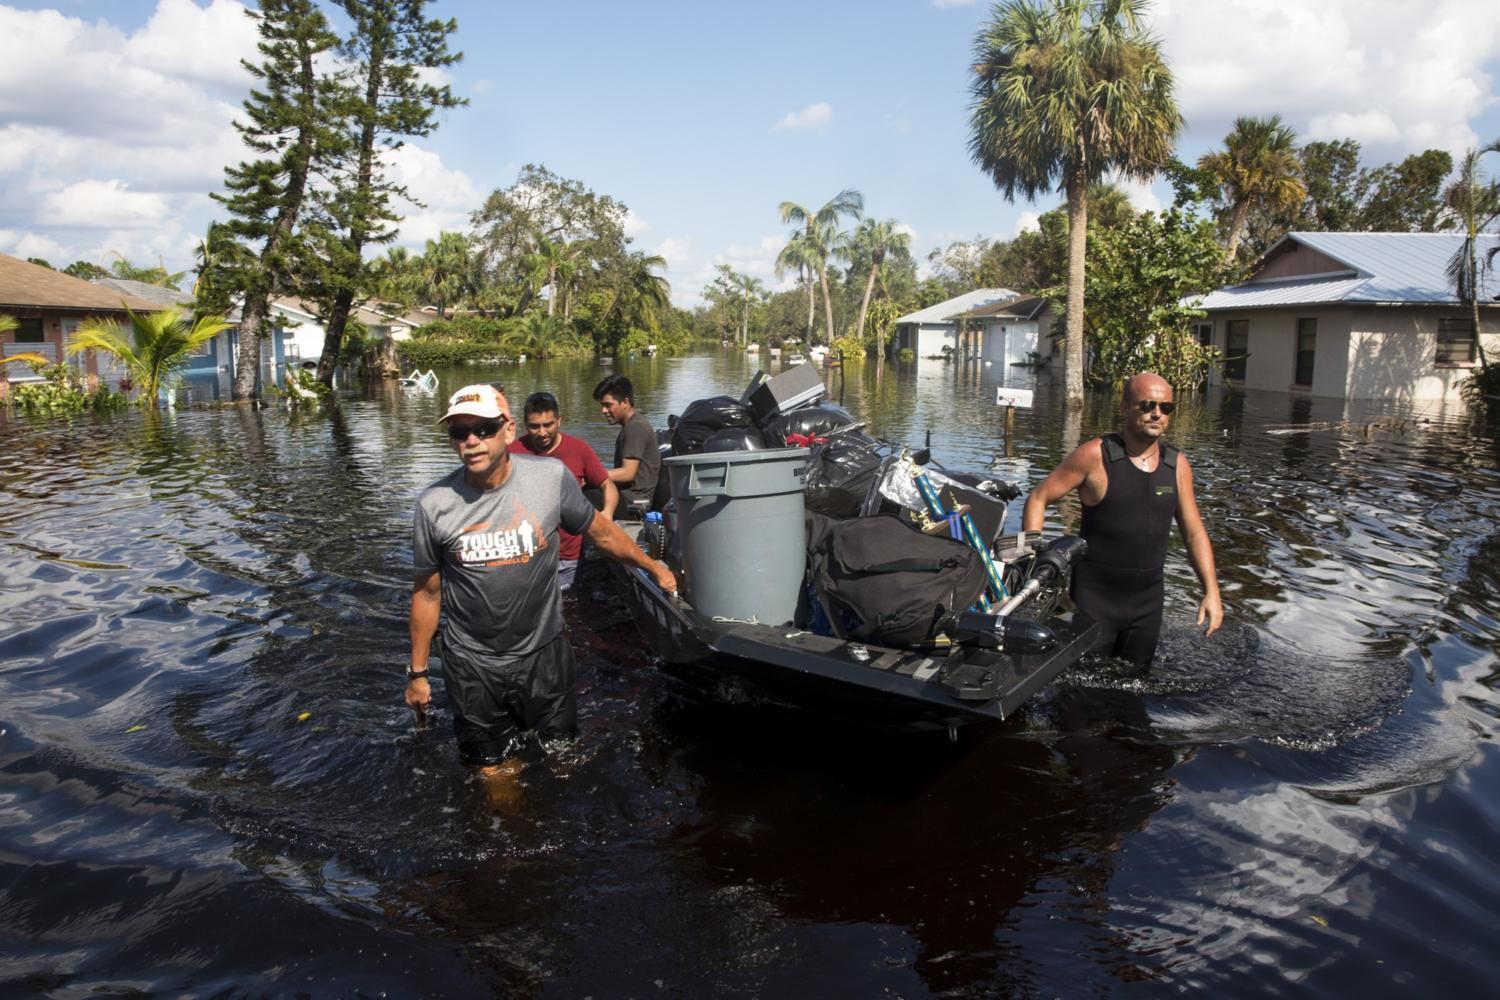 Don+Manley%2C+left%2C+and+Pedro+Castellano%2C+right%2C+pull+Manley%27s+boat%2C+loaded+with+residents%27+belongings%2C+along+a+flooded+Chapman+Avenue+in+Bonita+Springs%2C+Fla.%2C+on+Friday%2C+Sept.+15%2C+2017%2C+in+the+aftermath+of+Hurricane+Irma.+%0A+%28Nicole+Raucheisen%2FNaples+Daily+News+via+AP%29+Photo+credit%3A+Associated+Press